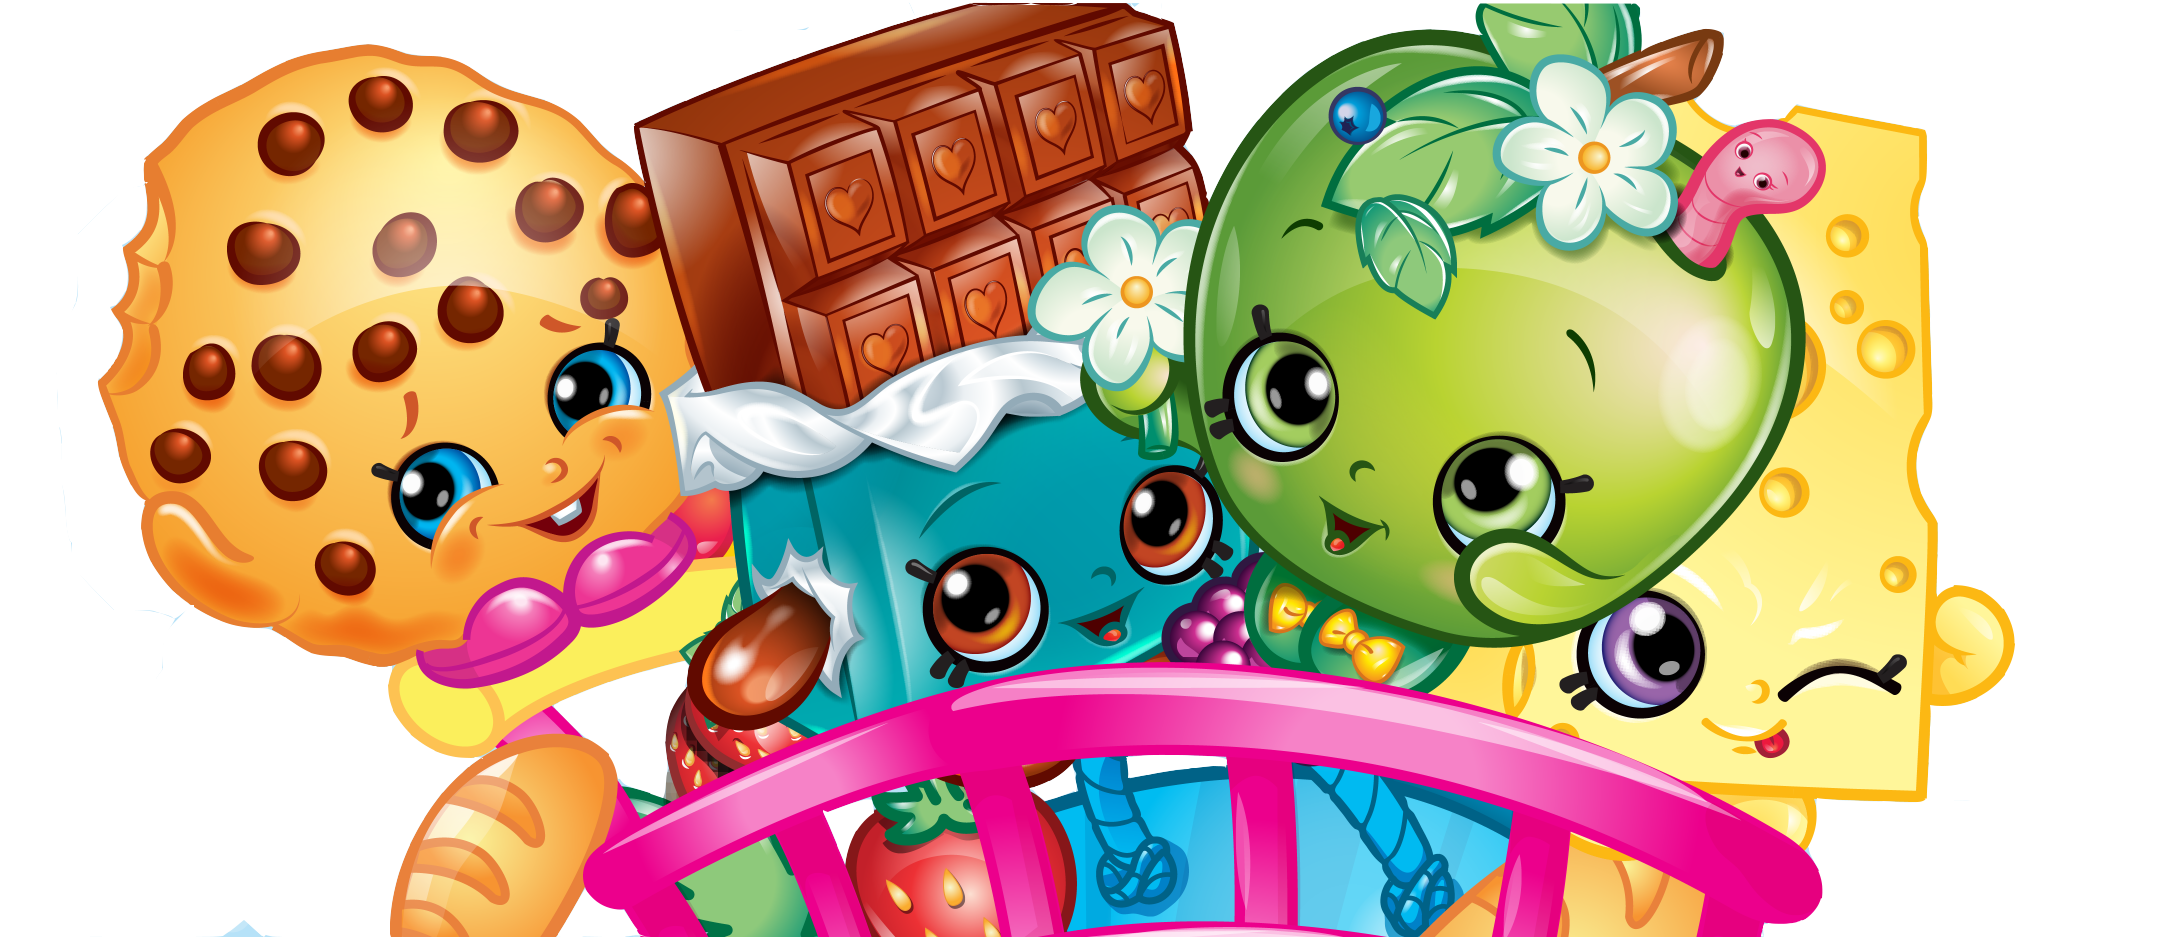 Shopkins Pictures 41881 Free Icons And Png Backgrounds